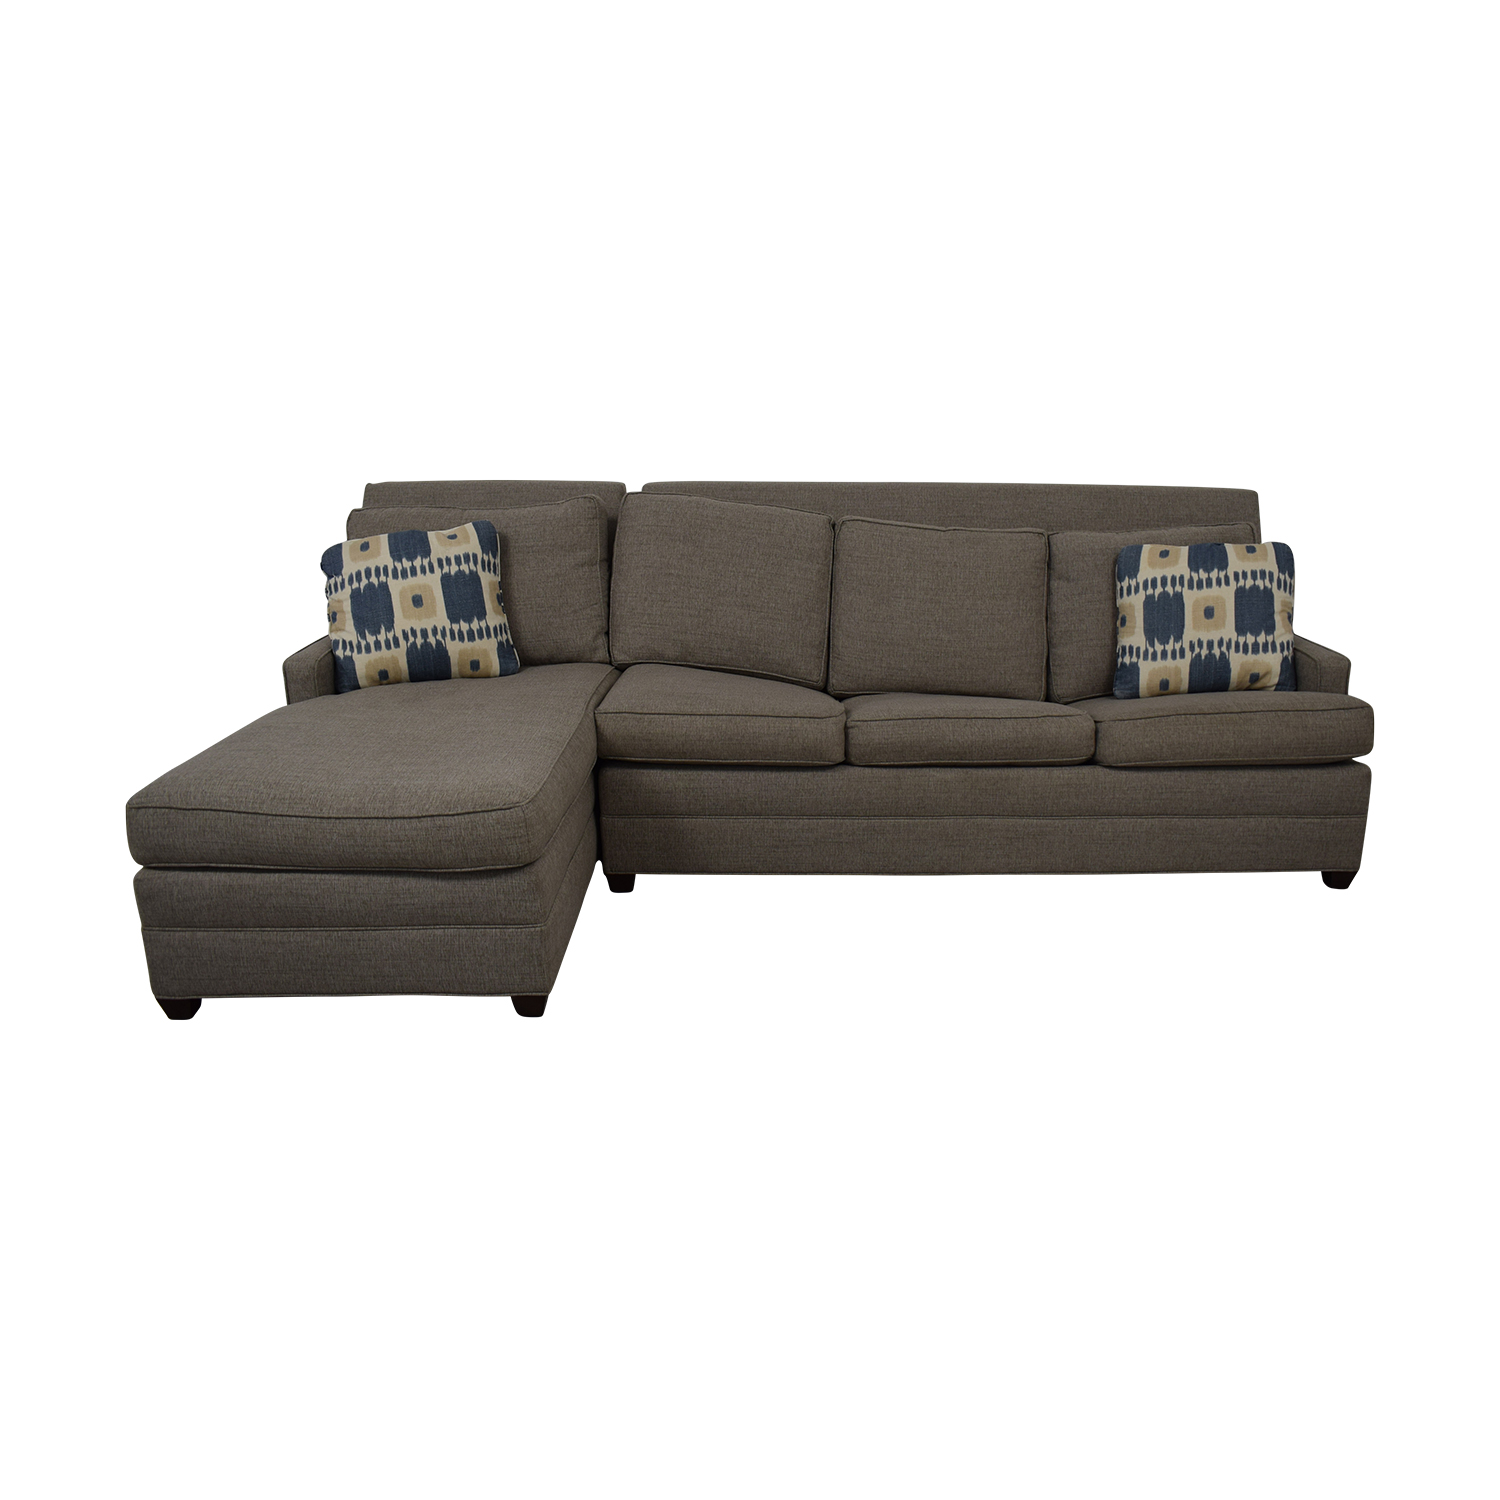 Vanguard Furniture Vanguard Furniture Left Chaise Queen Sleeper Sofa Sofas